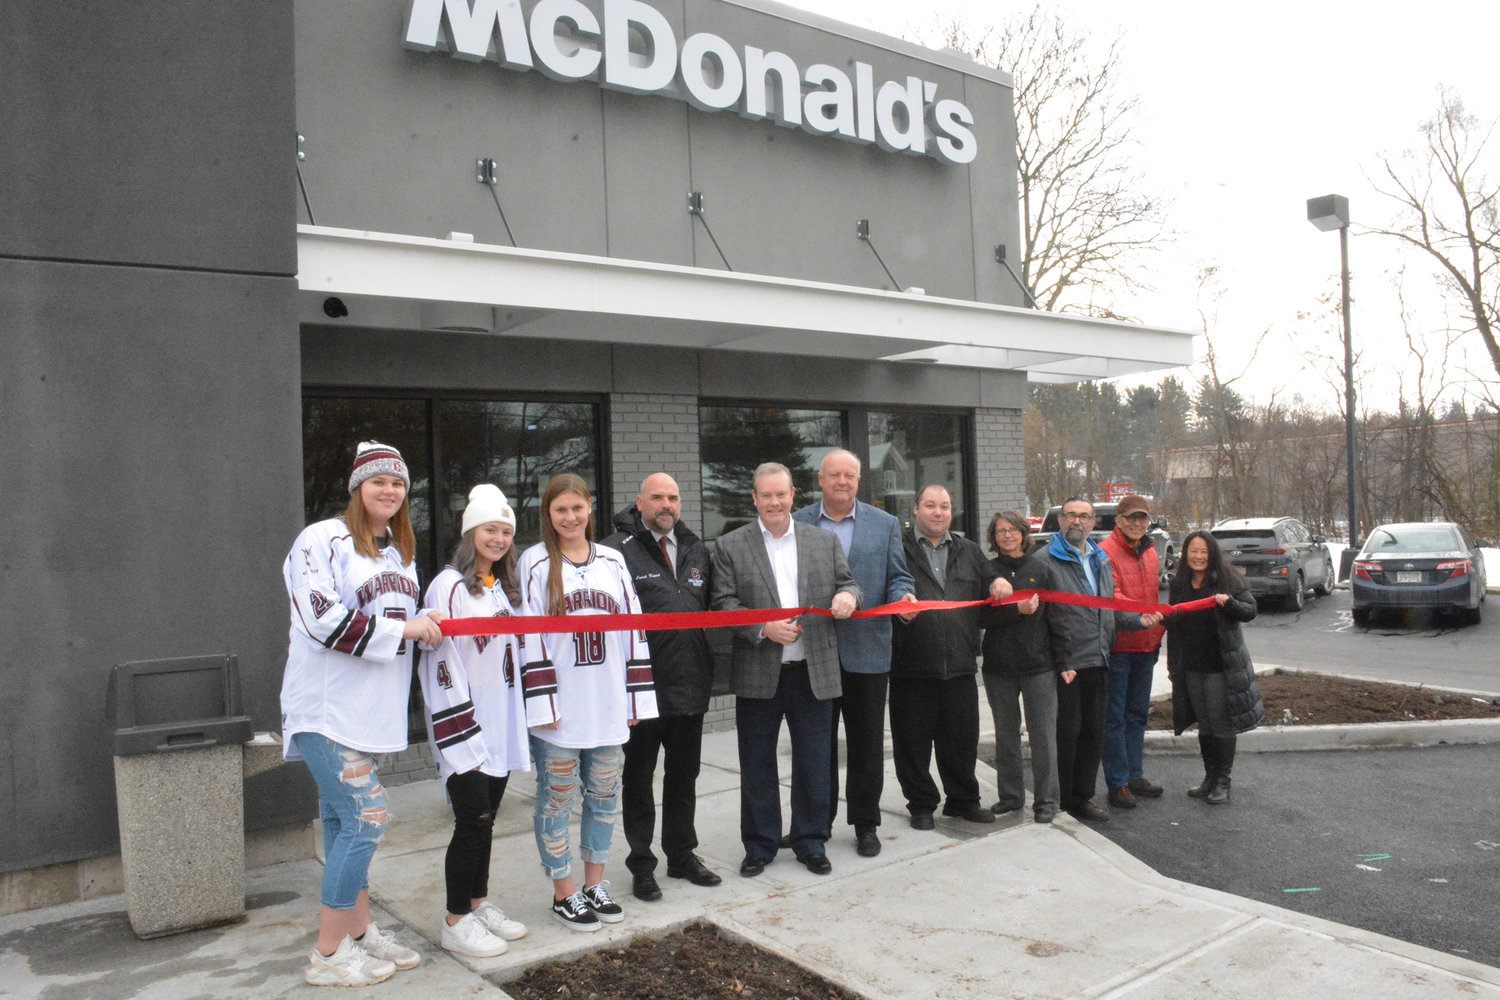 OPEN FOR BUSINESS — The Clinton Chamber of Commerce held a ribbon cutting ceremony for the Kirkland McDonald's on Meadow Street on Friday, Nov. 15. The major renovation project lasted eight weeks and boasts new features like a McCafe coffee bar and self-serving order kiosks. Pictured from left are Clinton girls hockey members Madison Dery, Abby Burns, Mia Lopata, Clinton girls hockey assistant coach Rob Kopek, Location Owner Tom Clark III, Director of Operations Mac Clark, Al Dohn, General Manager Rendall Perkett, Supervisor Donna Armstrong, Kirkland Deputy Town Supervisor Garry Colarusso, Village of Clinton Mayor Steven J. Bellona and Clinton Chamber of Commerce Executive Director Jackie Walters.